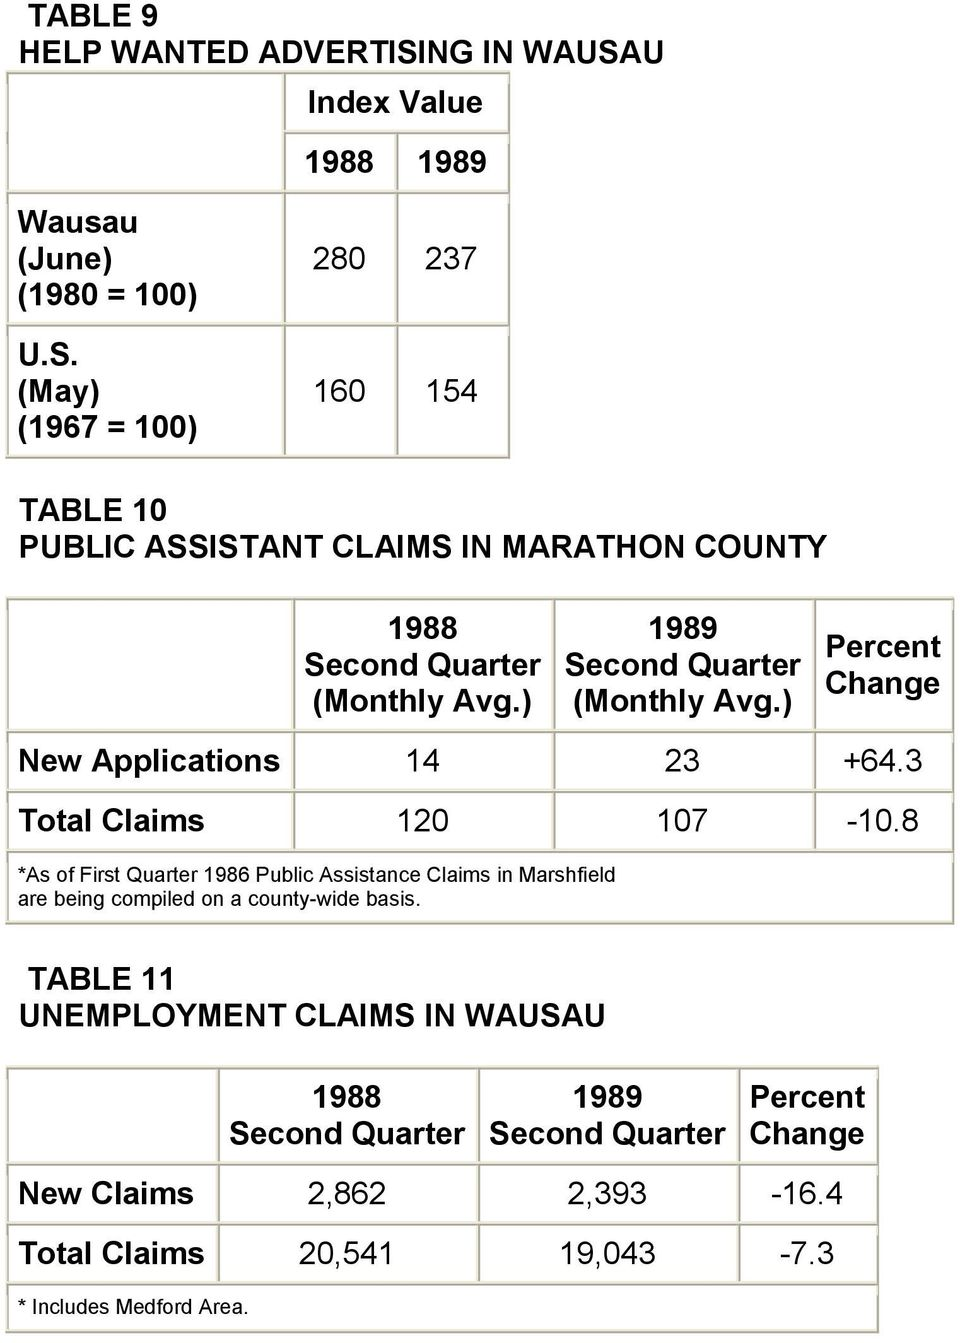 8 *As of First Quarter 1986 Public Assistance Claims in Marshfield are being compiled on a county-wide basis.